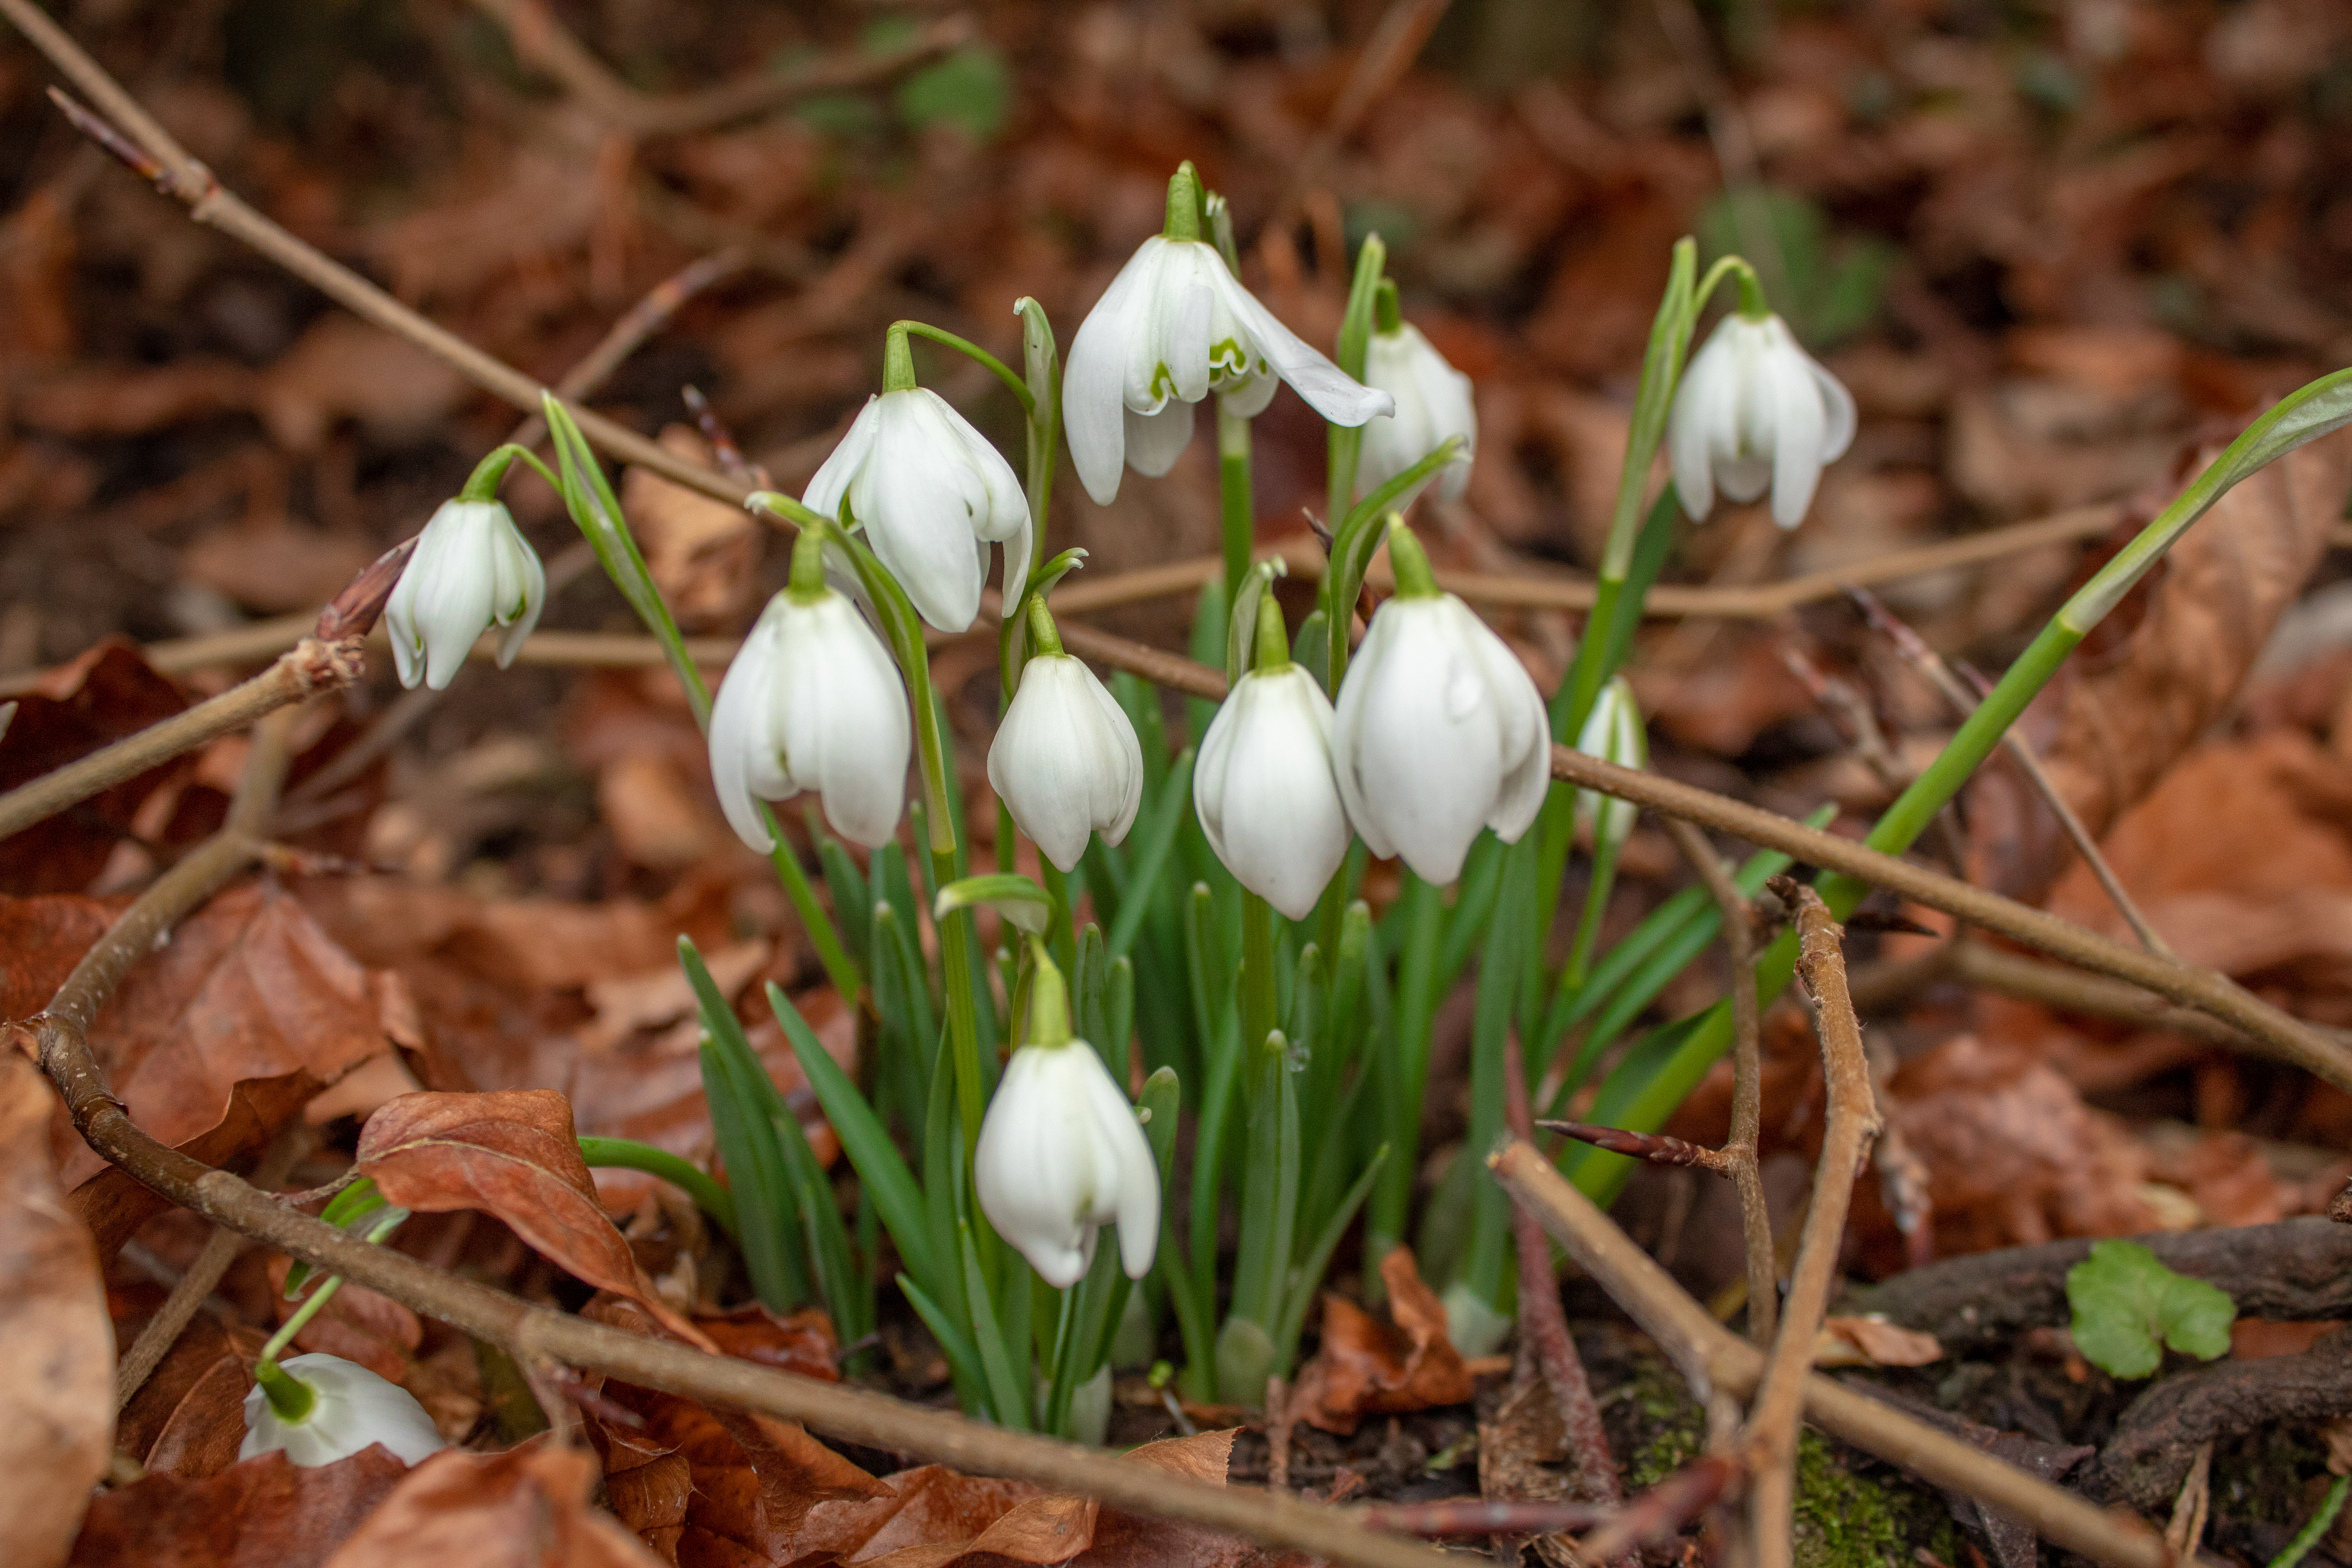 Cluster of White Snowdrops in the Woods